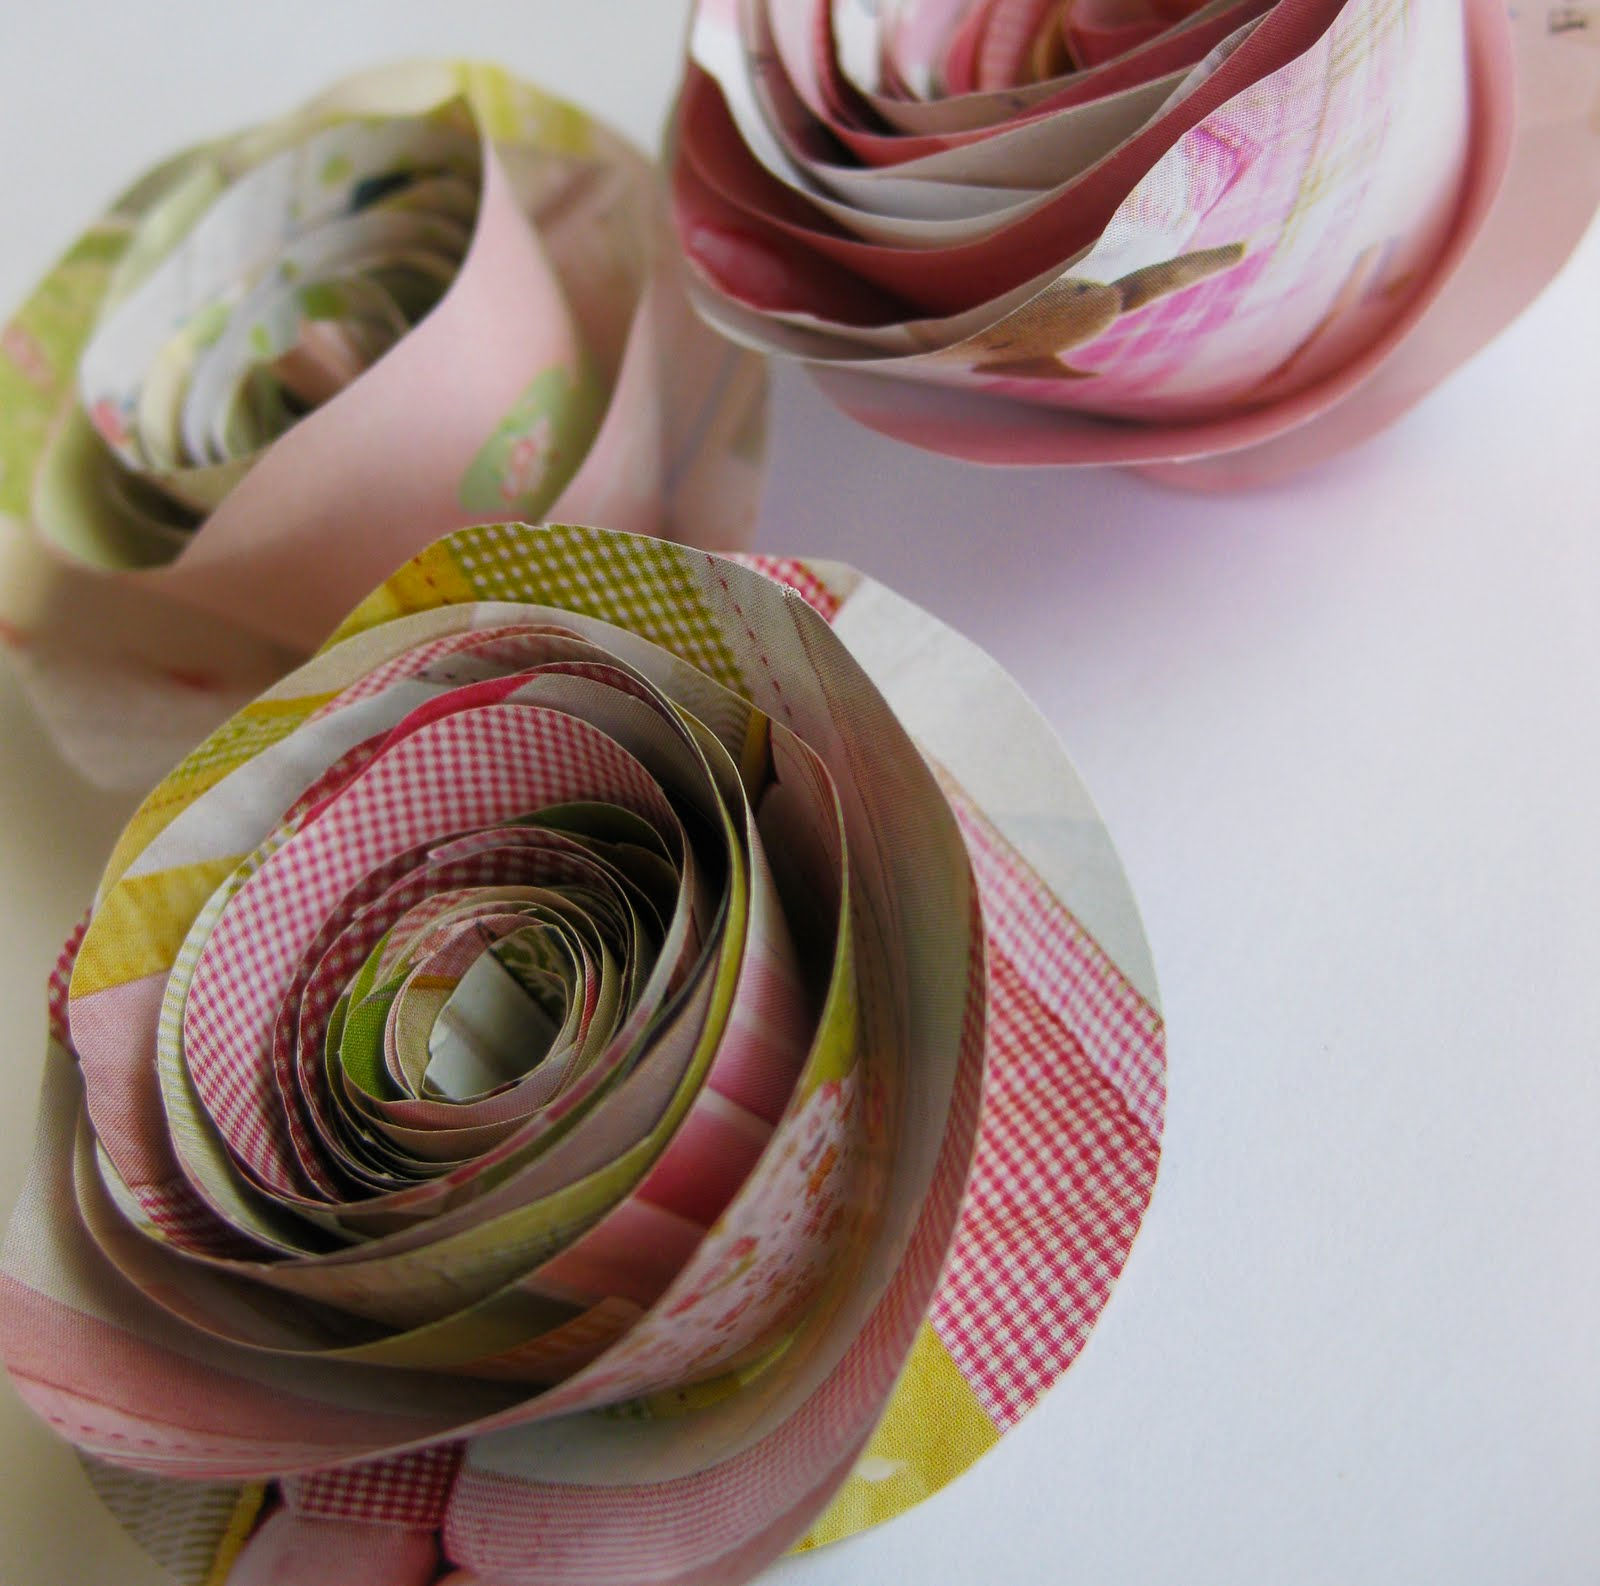 Frugal Life Project Cute Rolled Paper Flowers Made From Magazine Pages